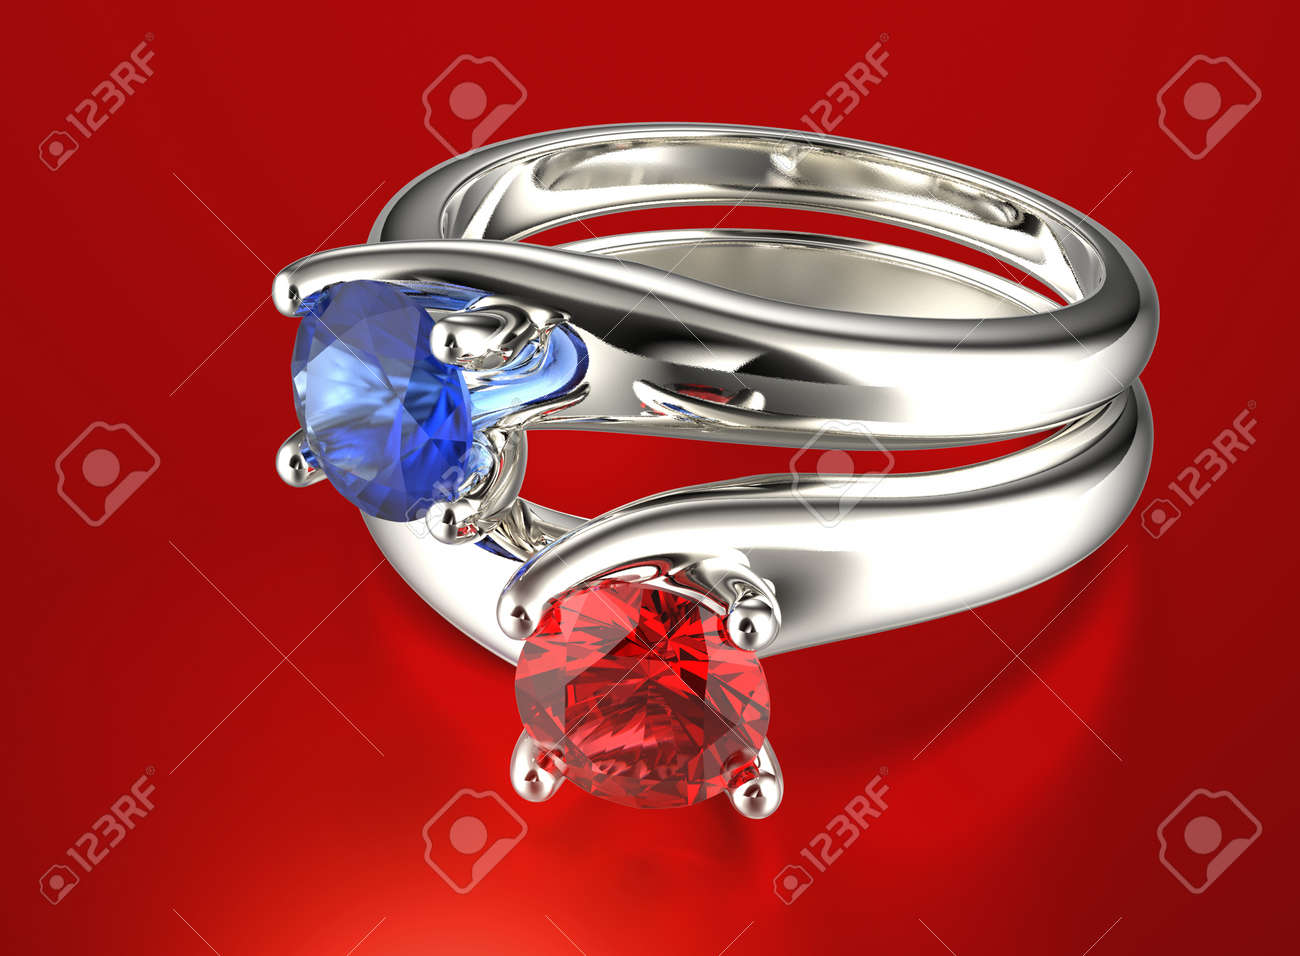 Golden Ring With Diamond Jewelry Background Valentine Day Stock